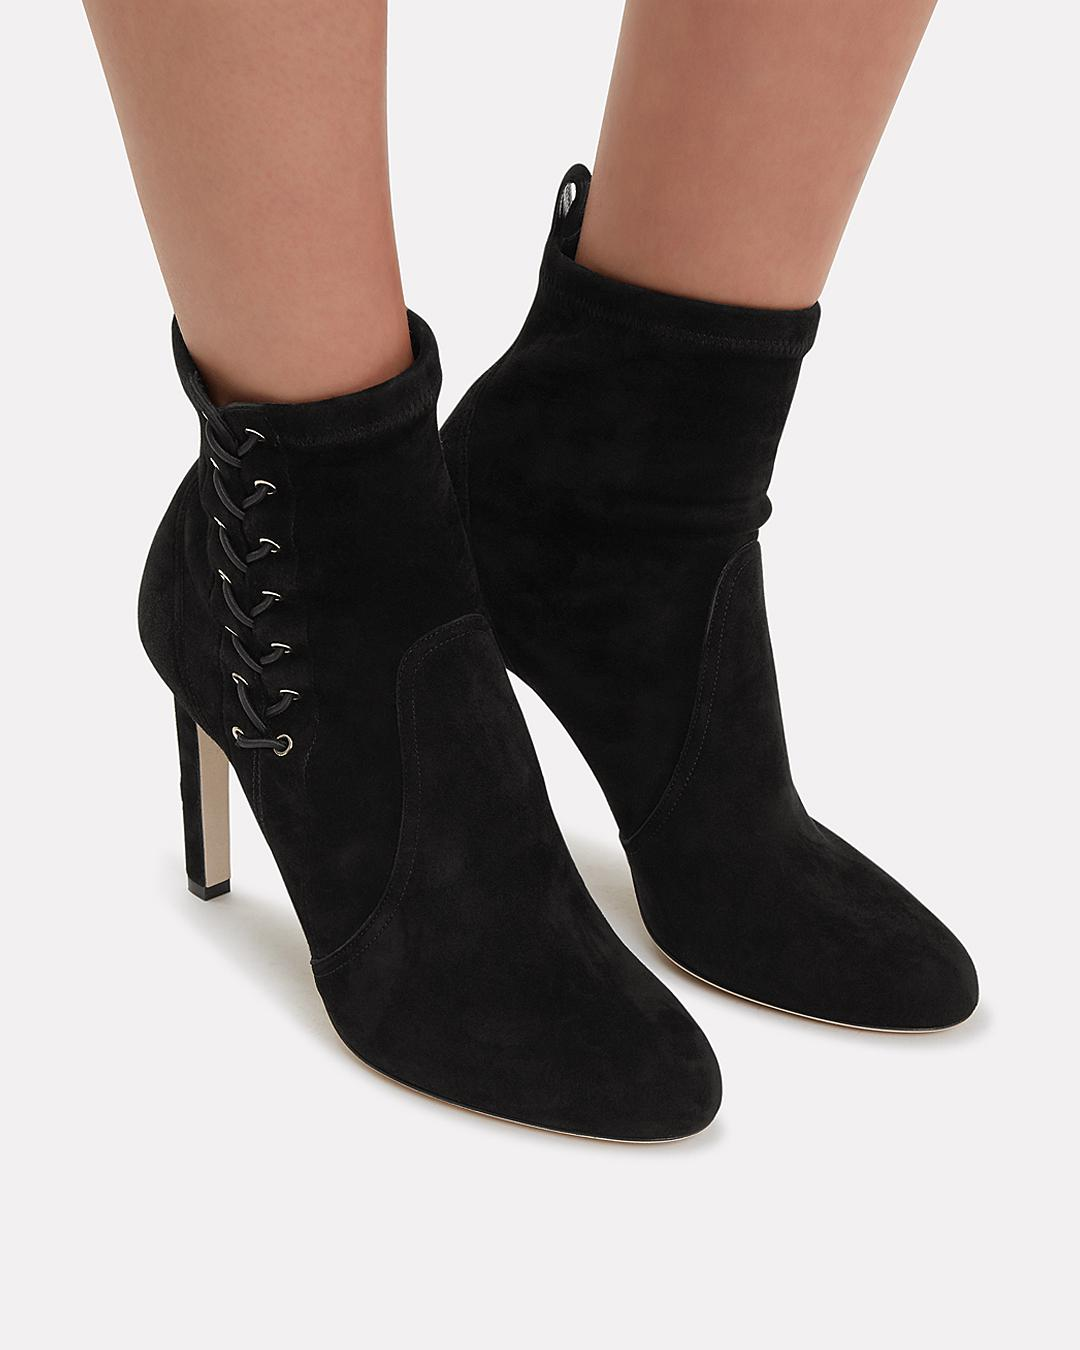 ed019822cc0 Jimmy Choo Mallory Lace Side Booties in Black - Lyst